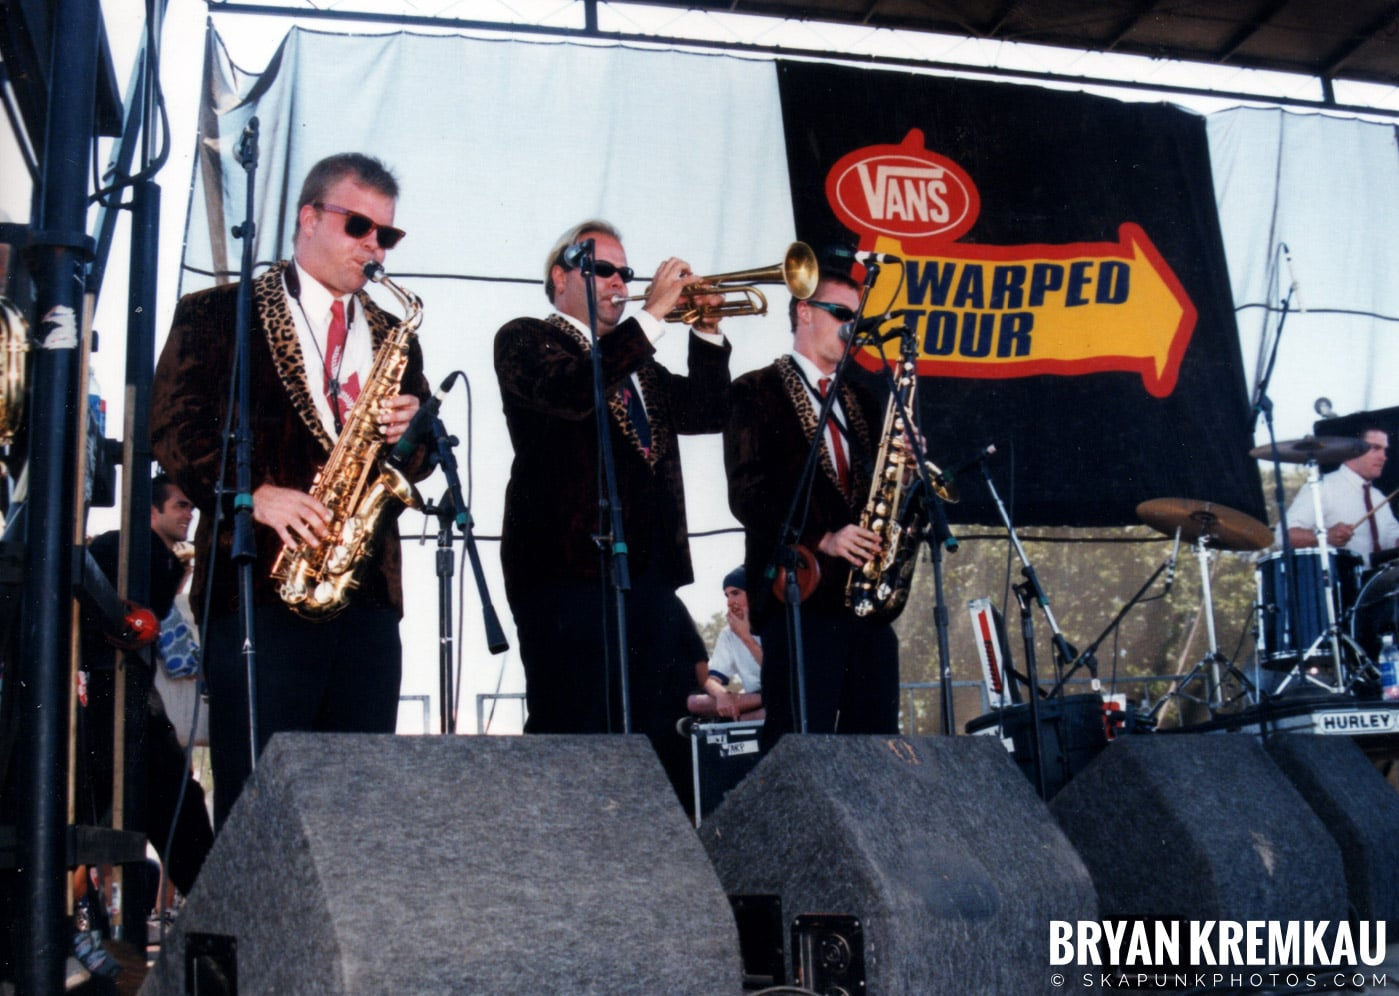 Cherry Poppin' Daddies @ Vans Warped Tour, Randall's Island, NYC - 8.1.98 (16)